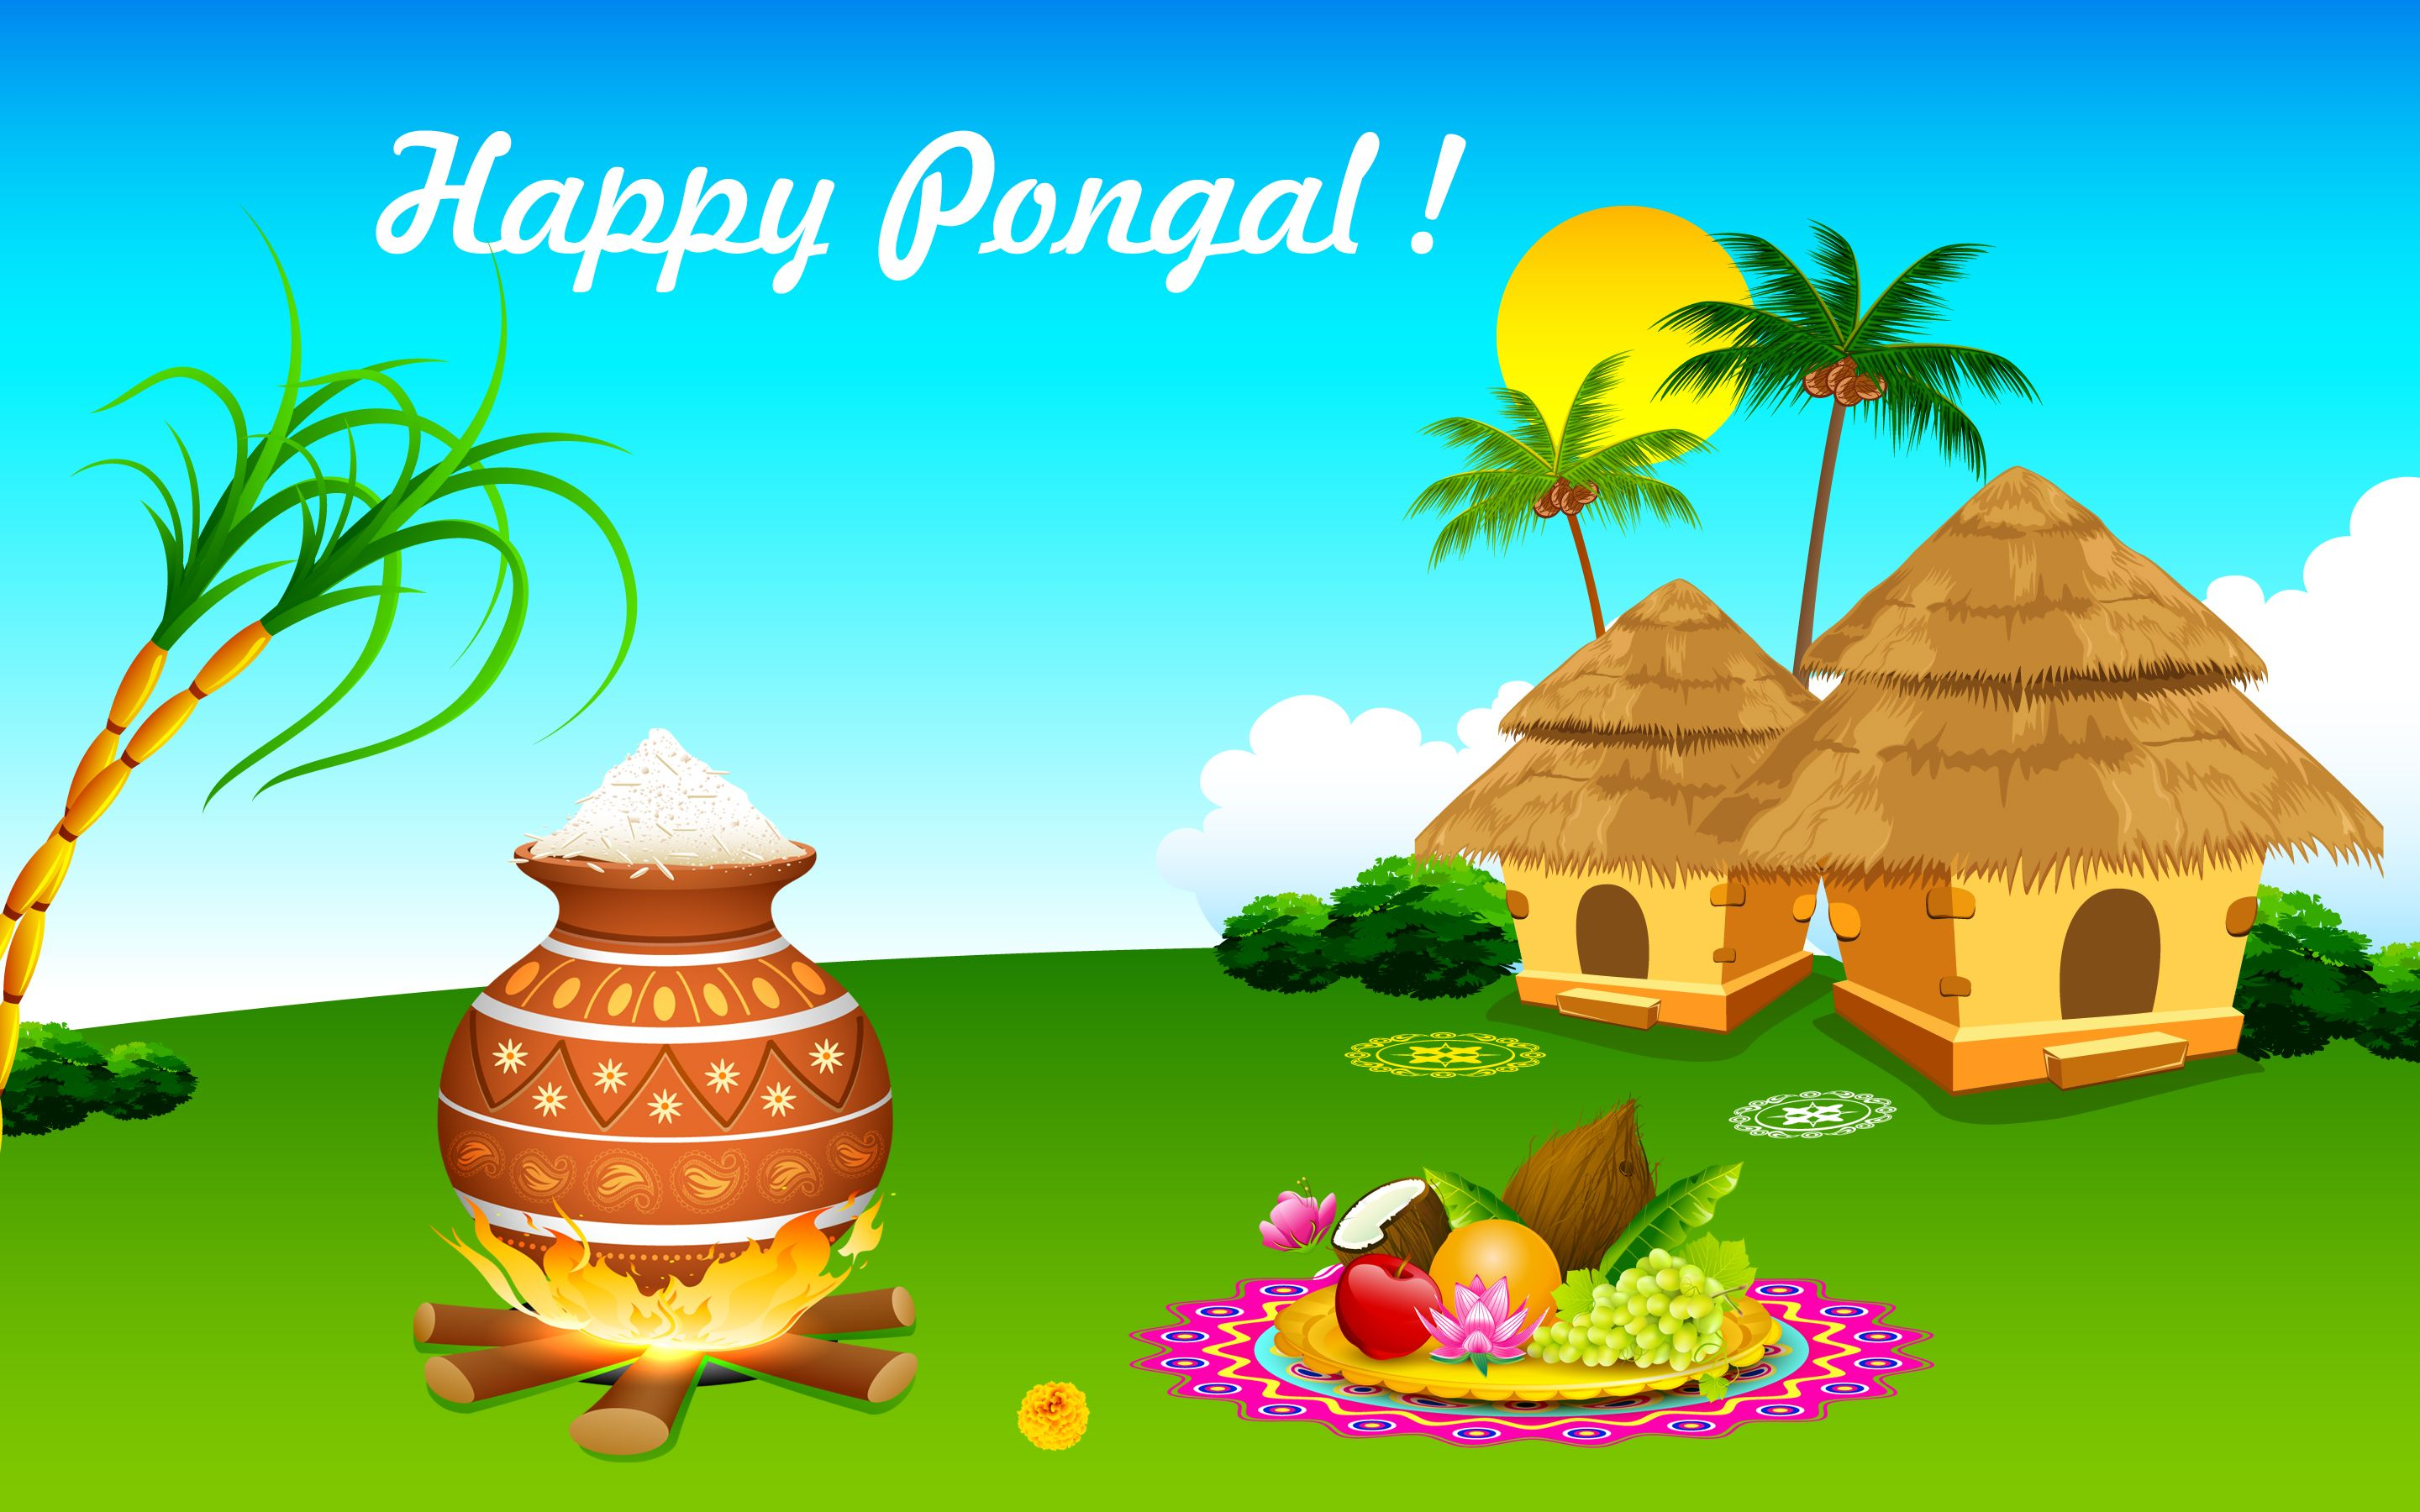 happy pongal wishes new picture happy pongal wishes new hd happy pongal wishes new picture happy pongal wishes new hd new